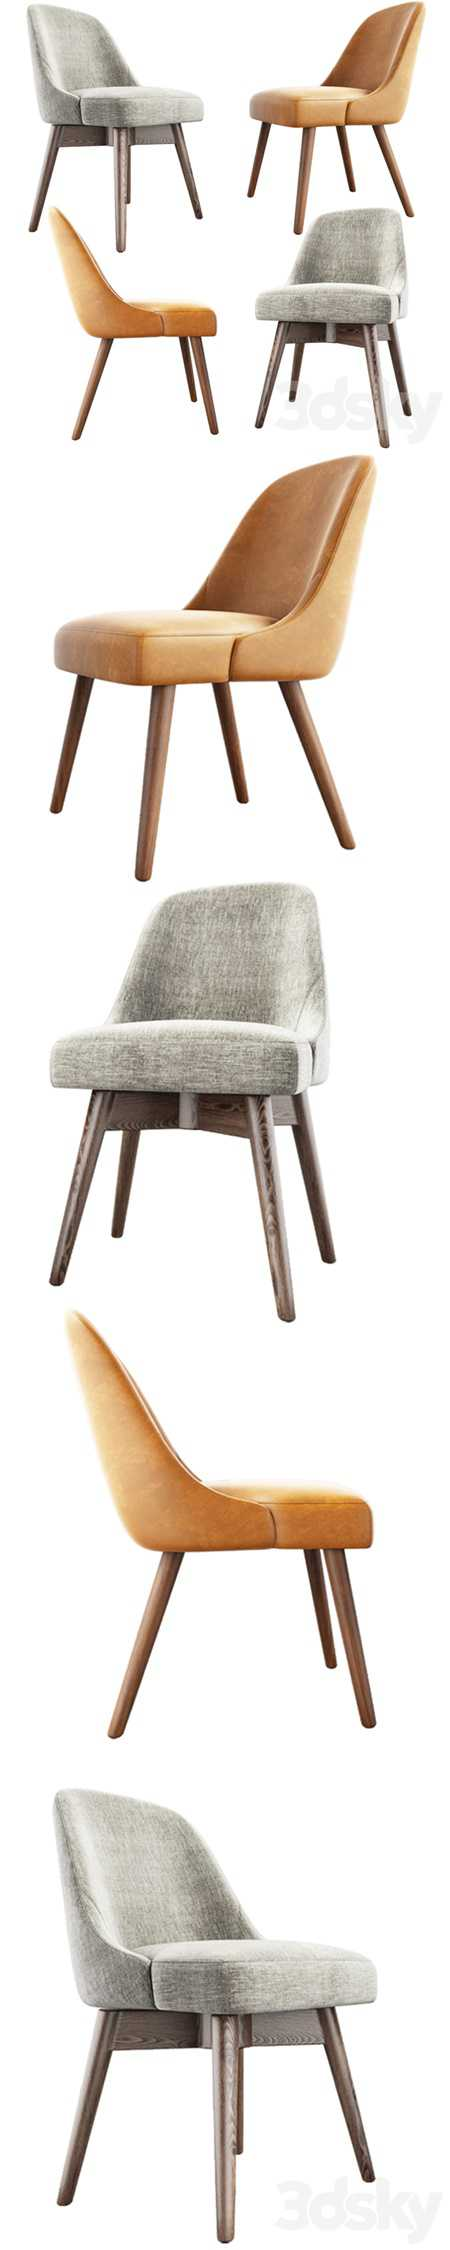 West Elm Mid-Century Dining Chair Set